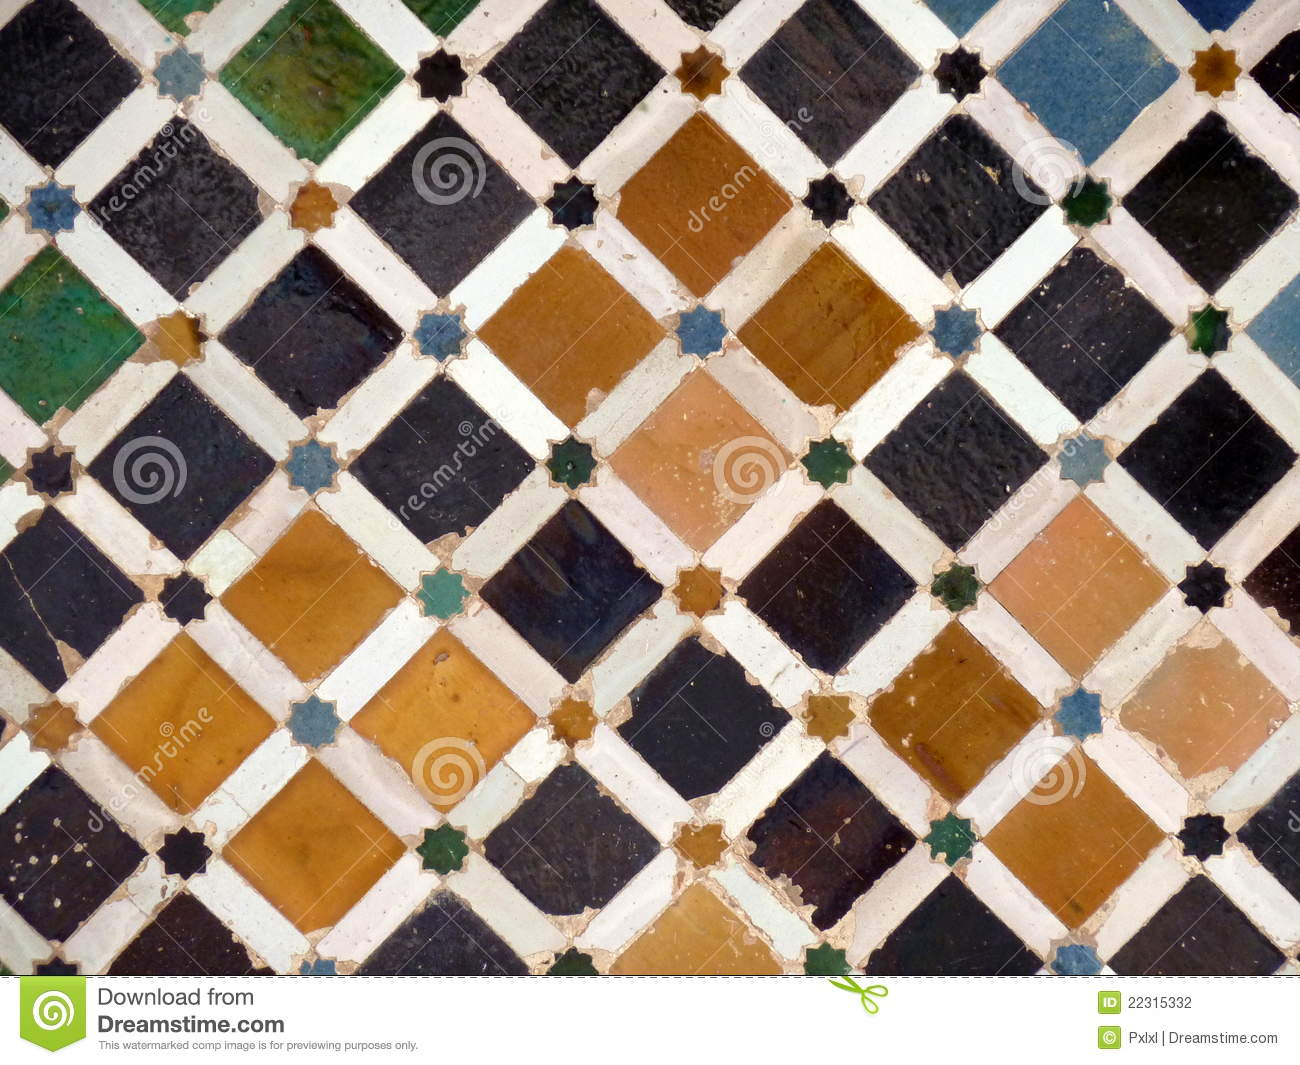 decorative tiles in spain stock photography - Decorative Tiles